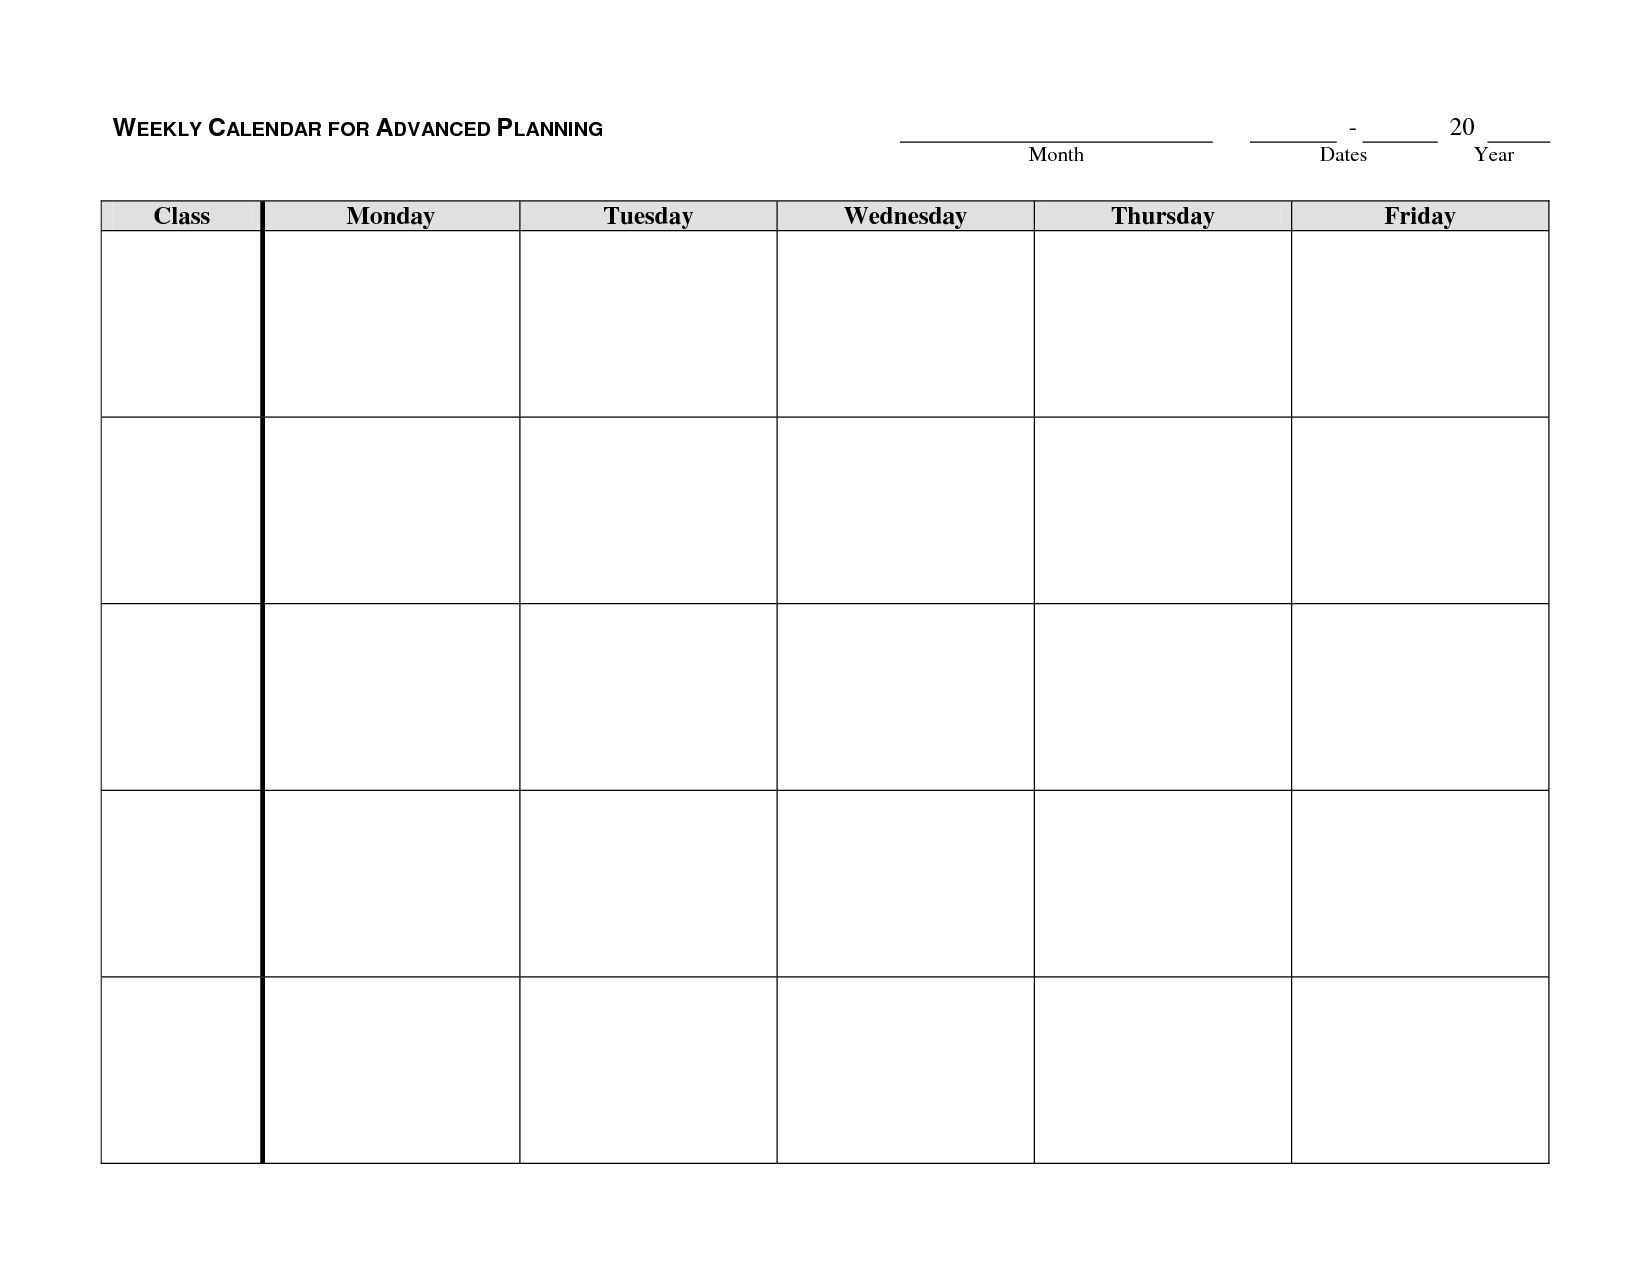 Monday Friday Calendar | Printable Calendar Templates 2019